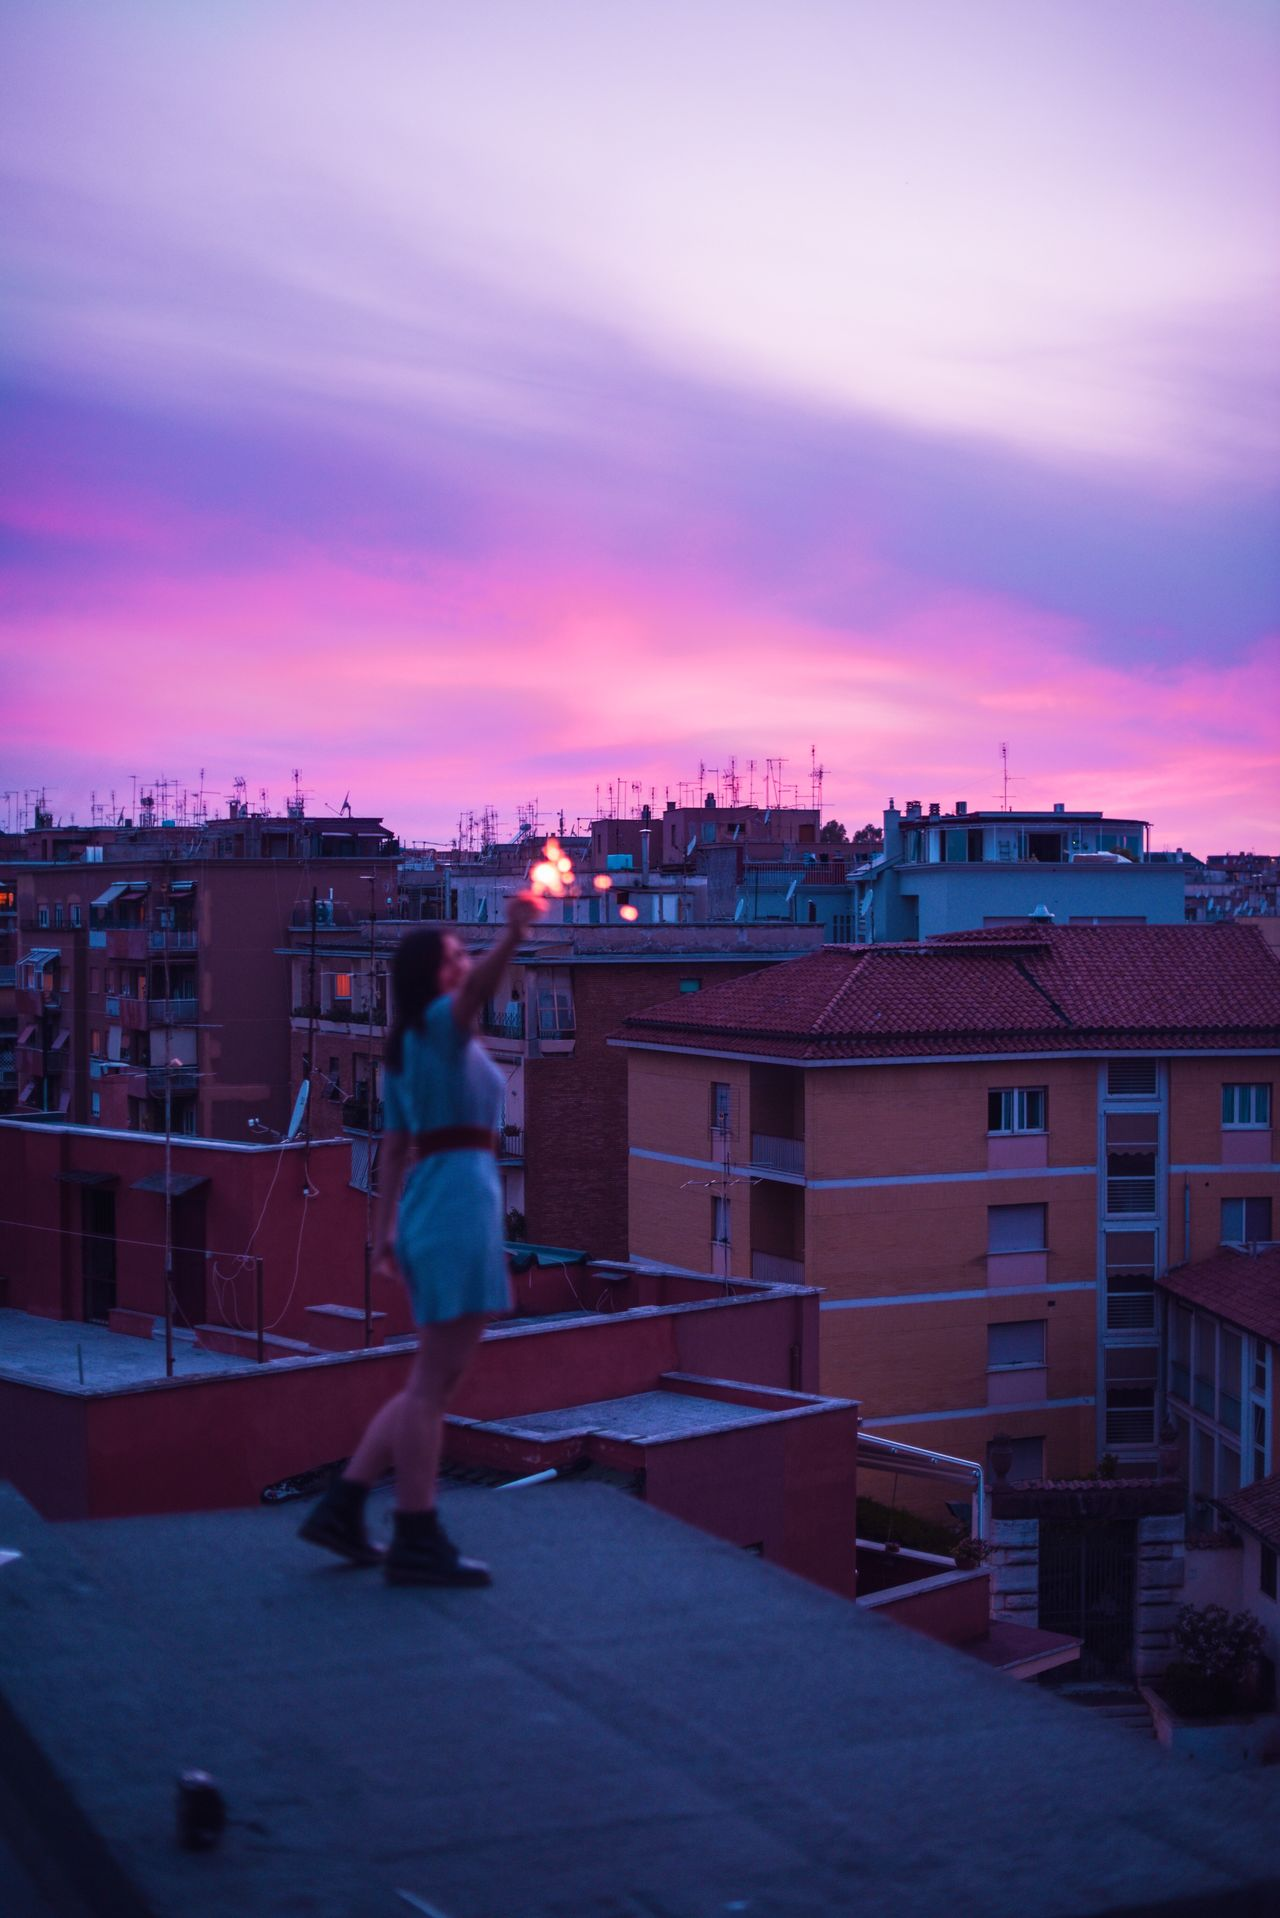 Out of focus Building Exterior Built Structure Architecture Sky Sunset One Person City Full Length Cityscape Leisure Activity Cloud - Sky Outdoors Lifestyles Illuminated Real People Roof Nature People Young Adult One Man Only